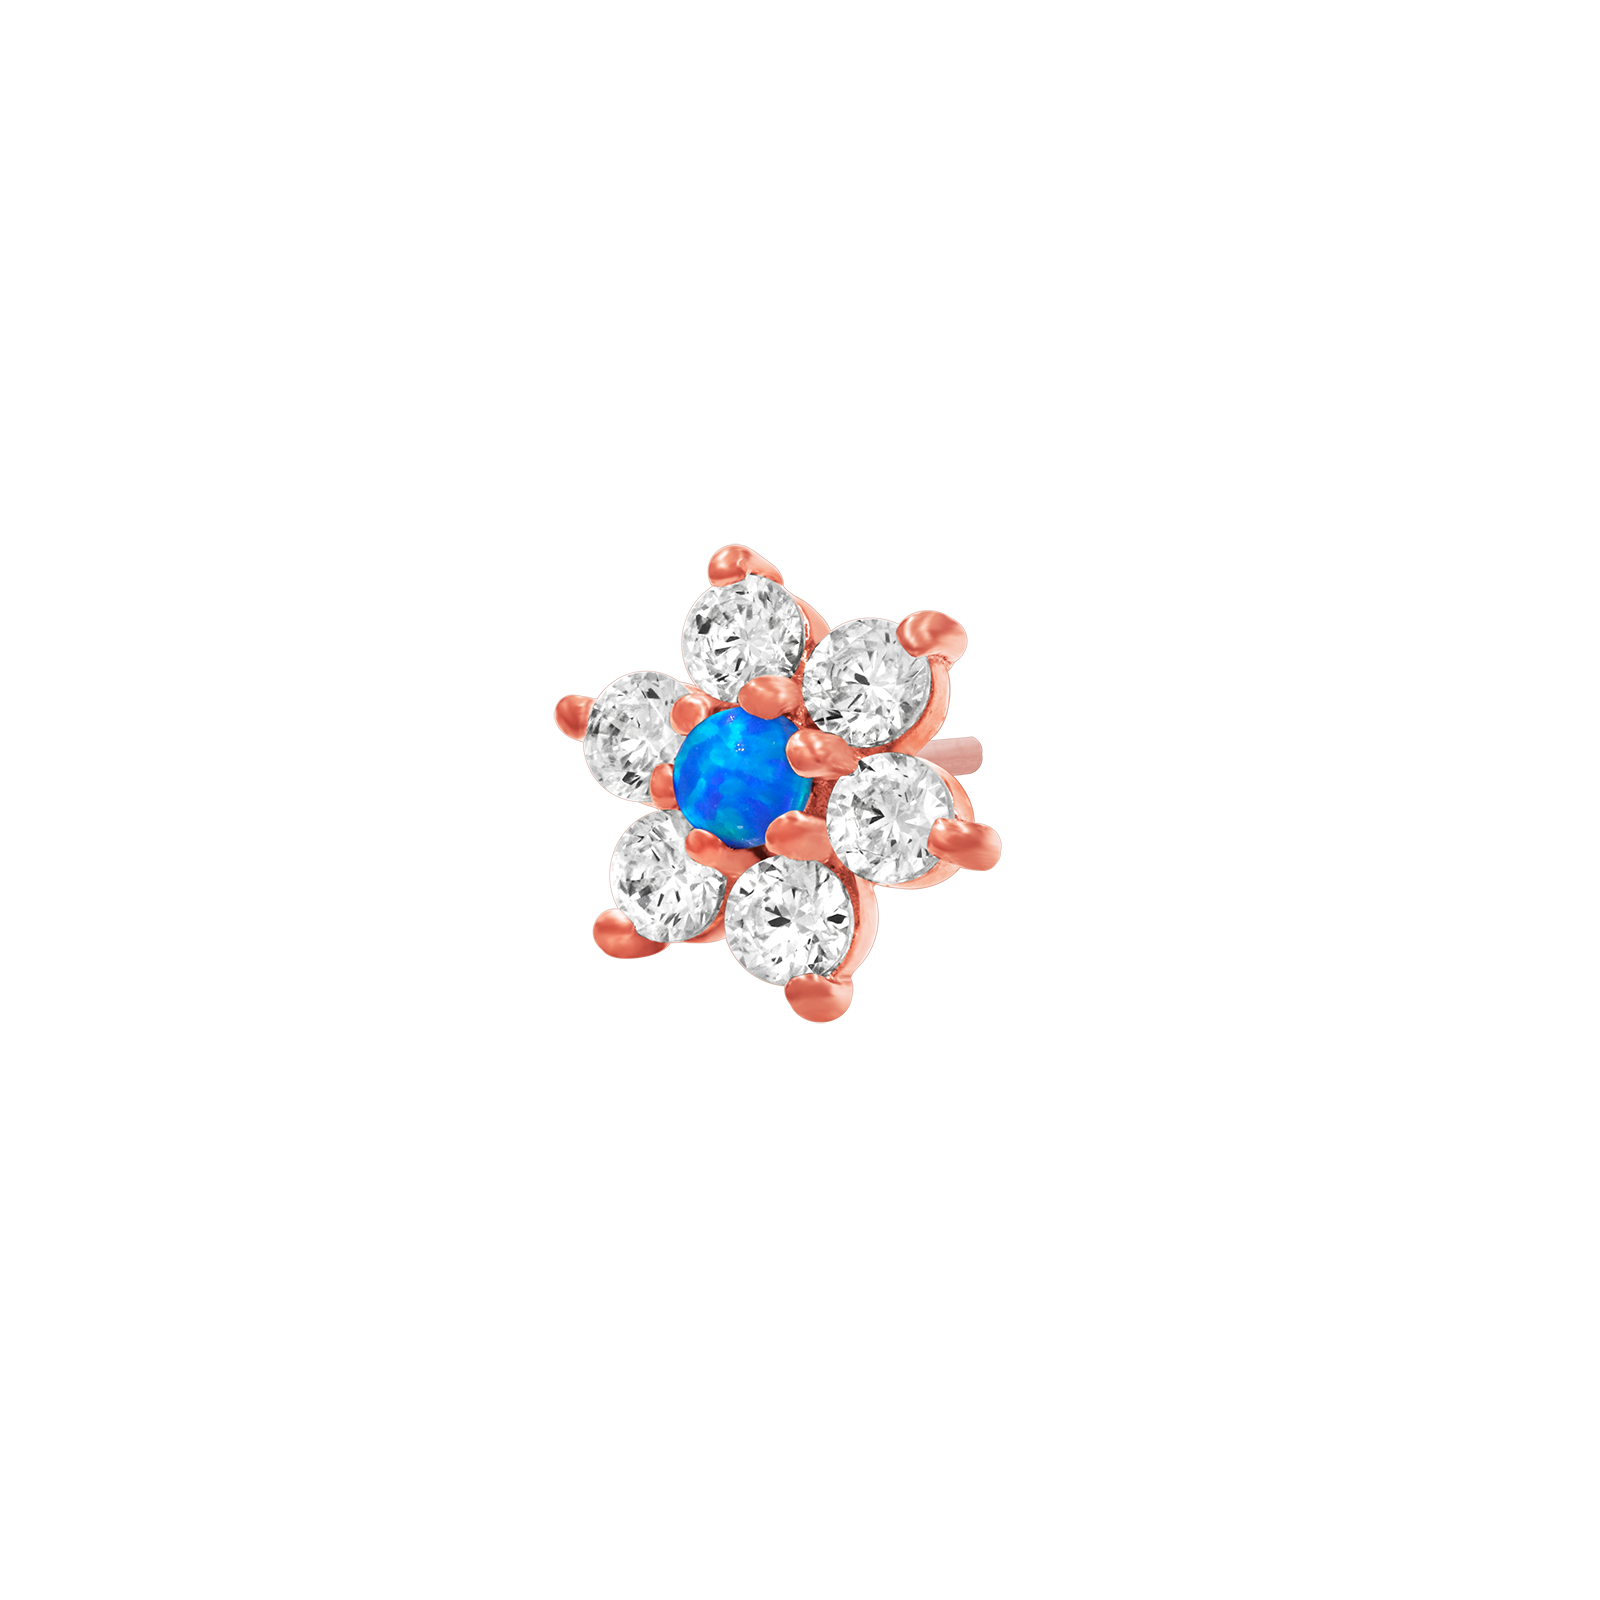 14ct Rose Gold Flower with Swarovski & Blue Opal - Isha Body Jewellery